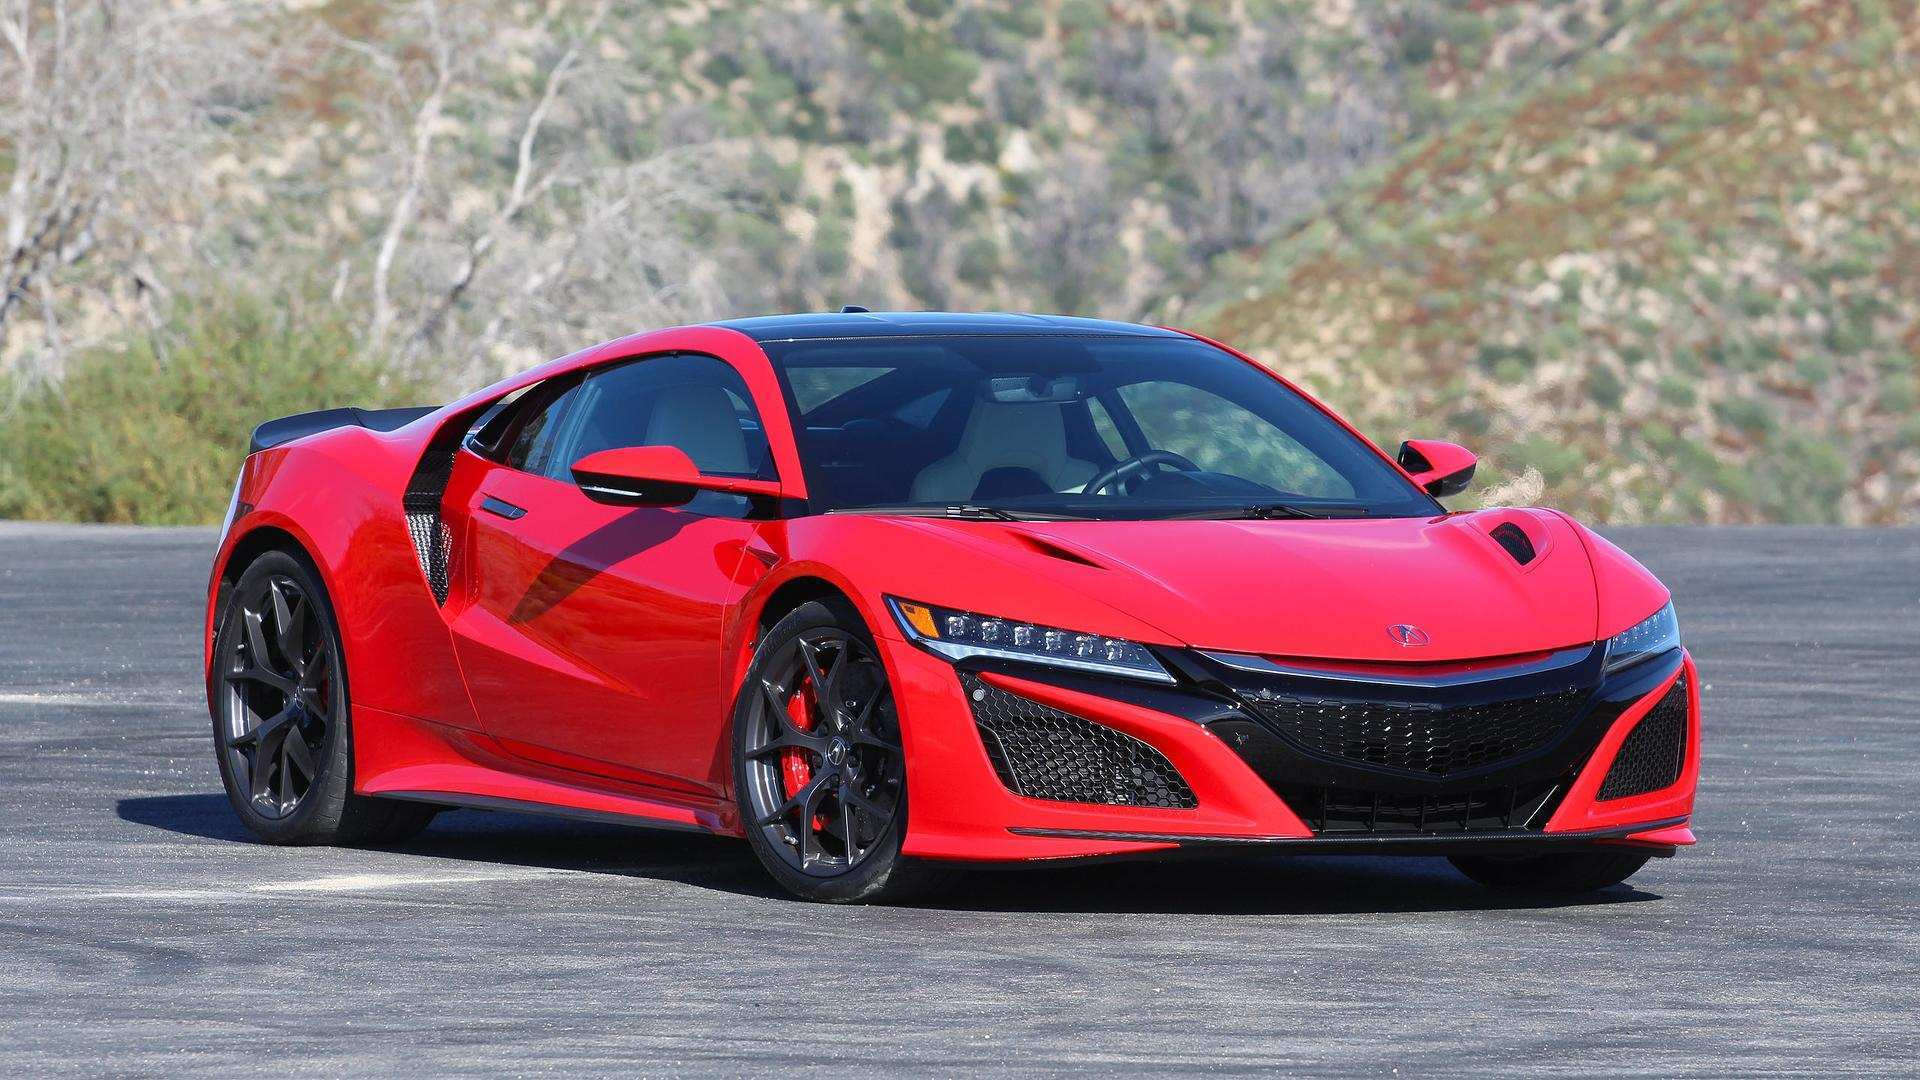 68 Gallery of 2020 Acura NSXs Performance and New Engine by 2020 Acura NSXs